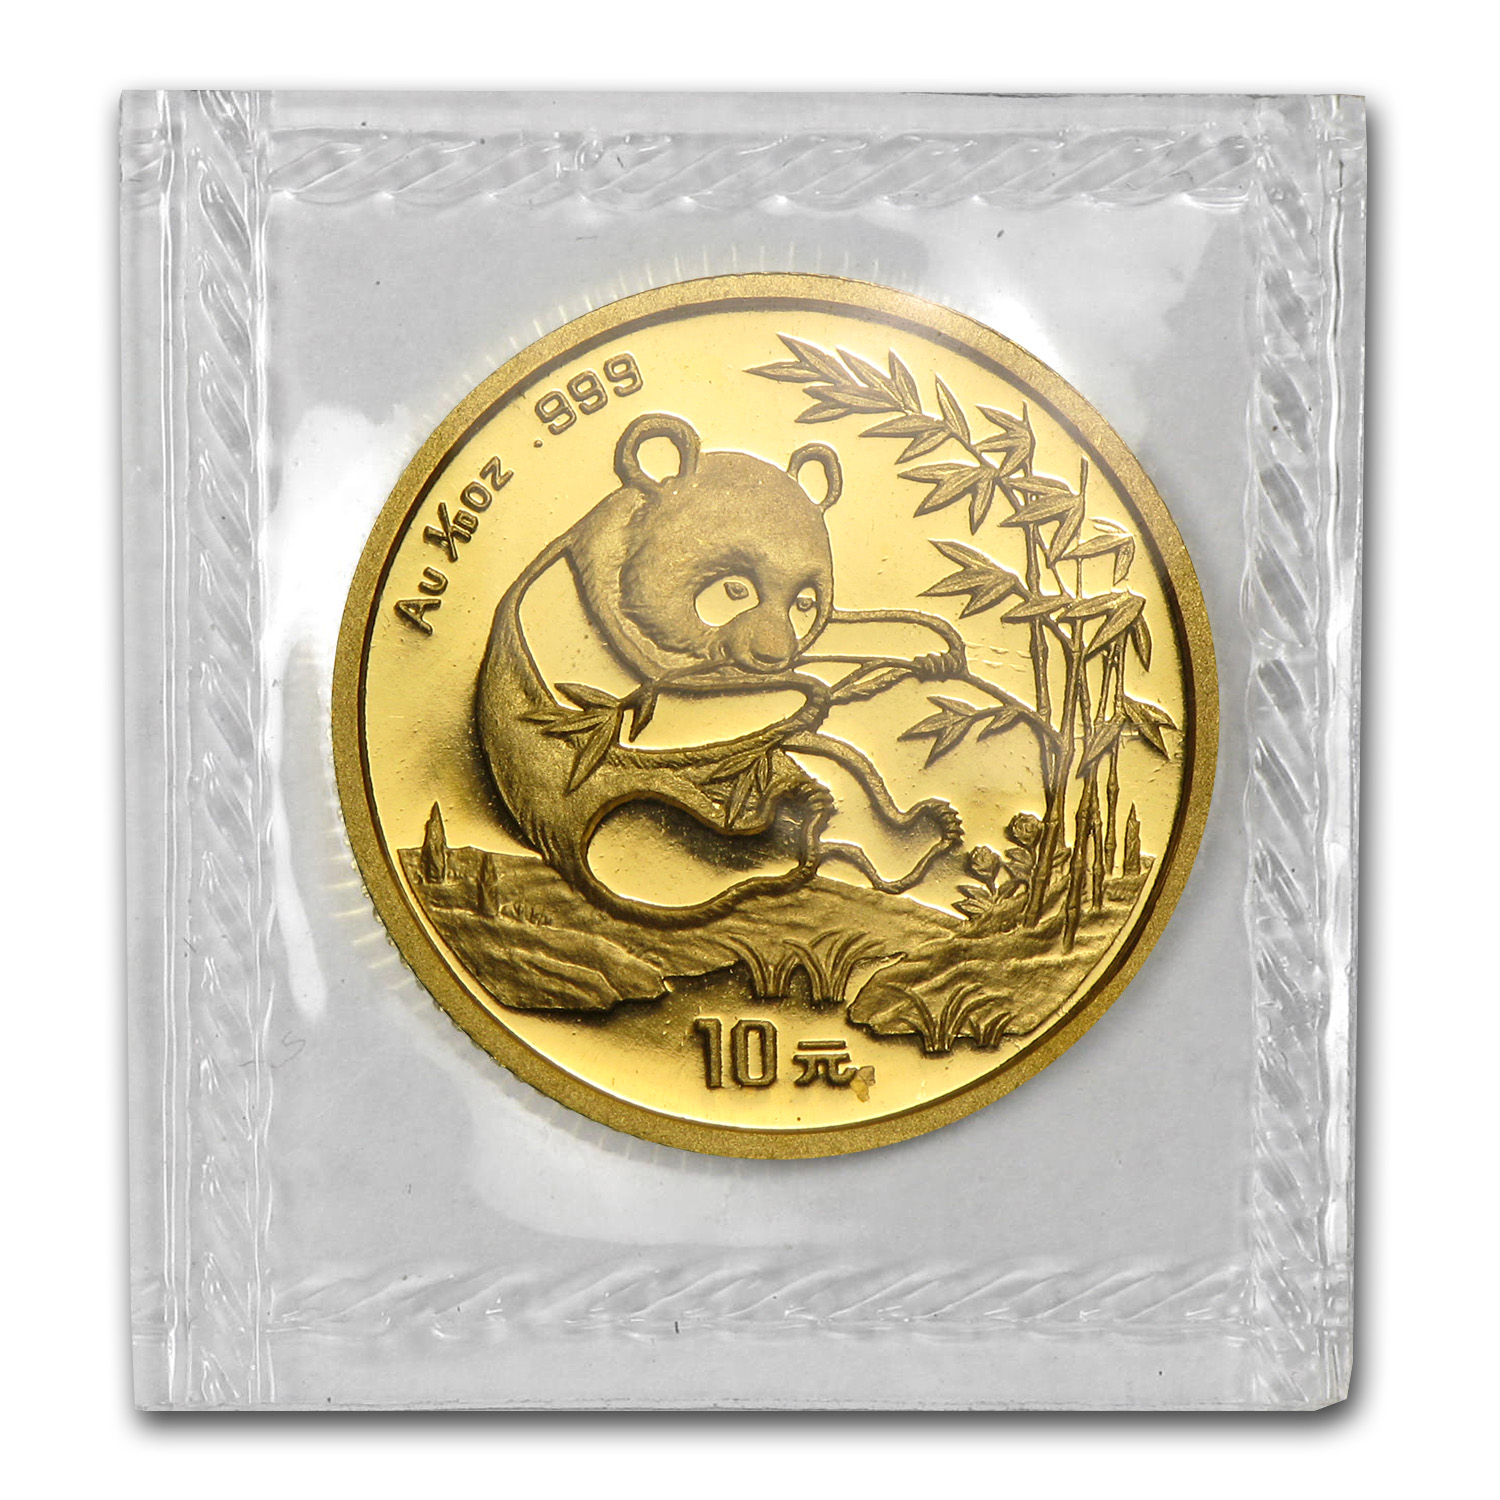 1994 (1/10 oz) Gold Chinese Pandas - Small Date (Sealed)